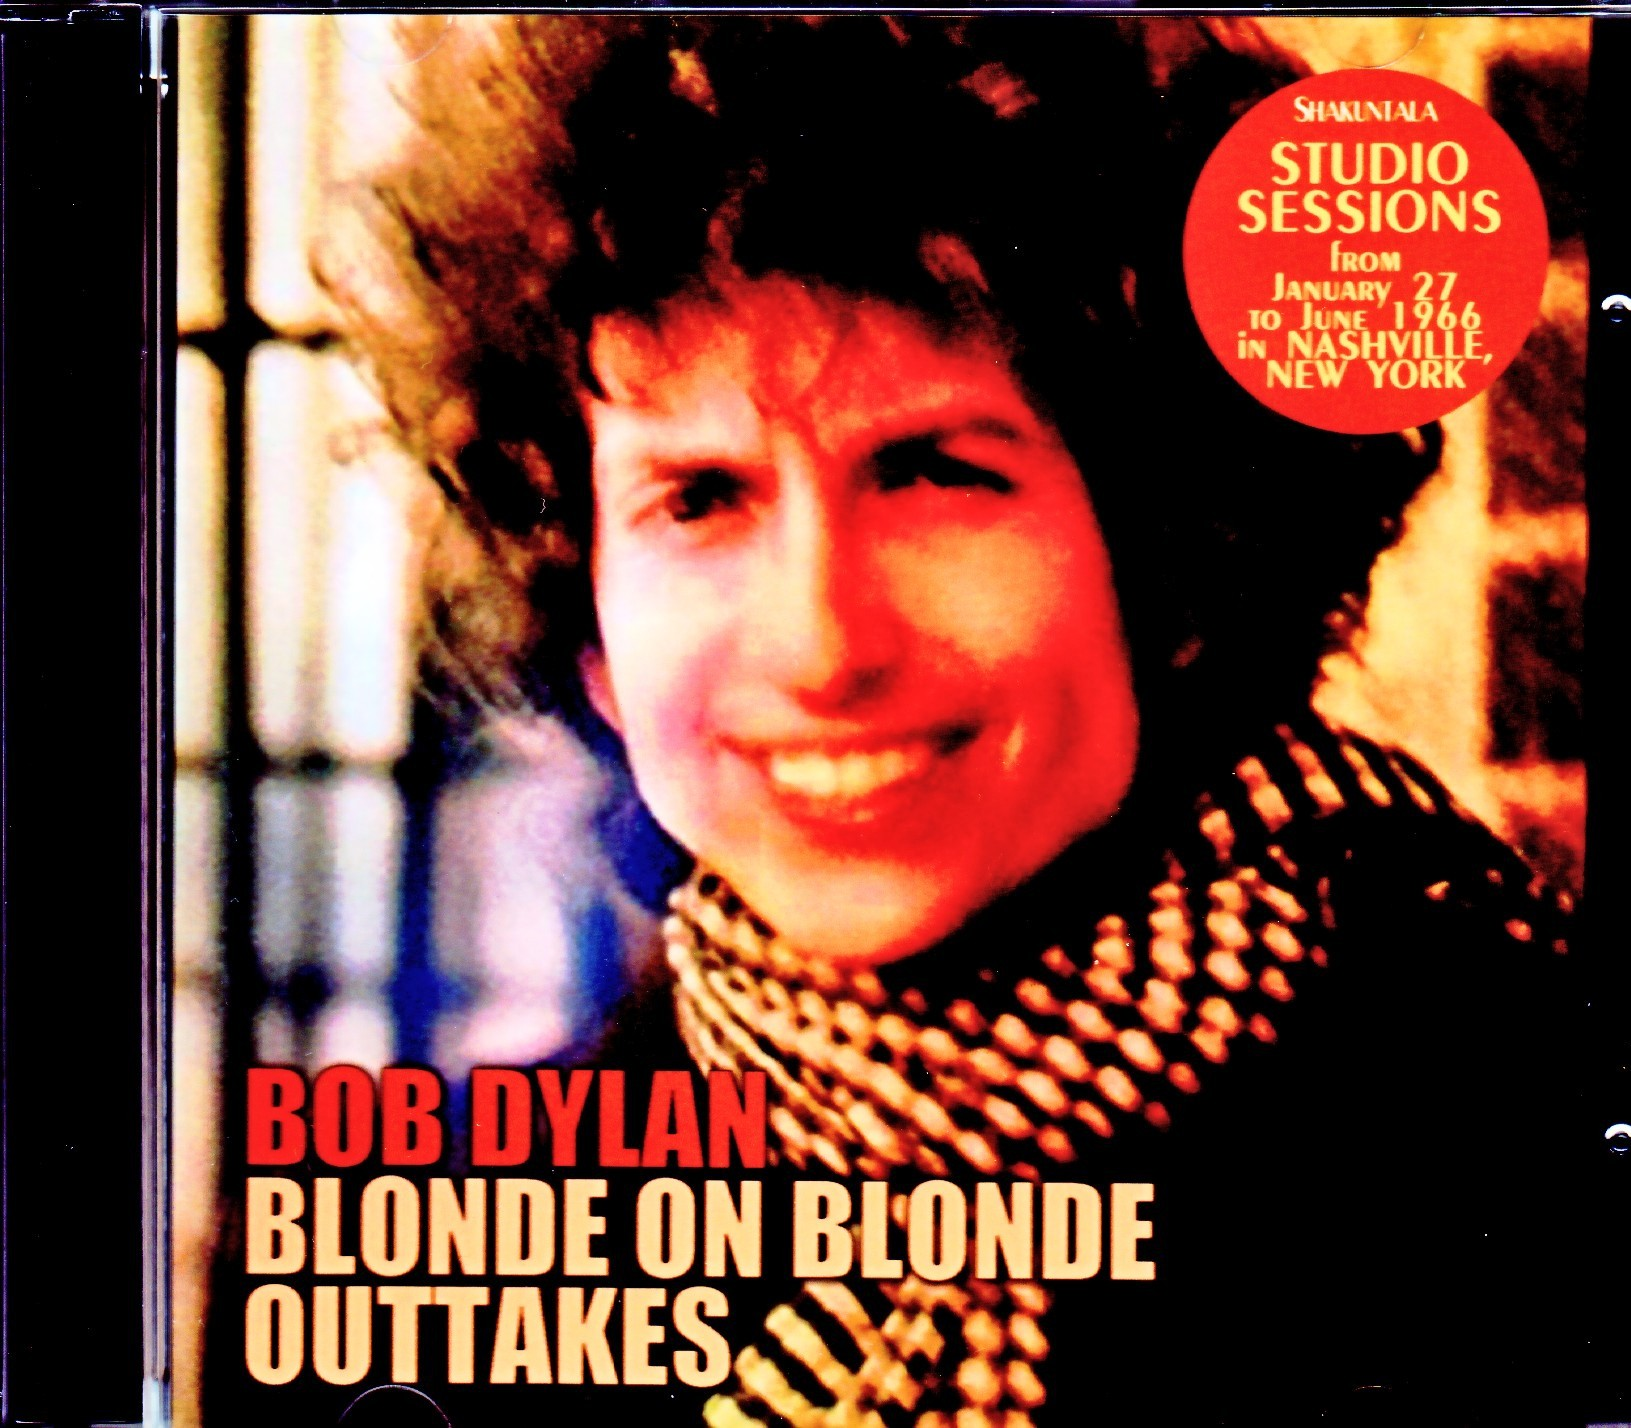 Bob Dylan ボブ・ディラン/Blonde on Blonde Outtakes